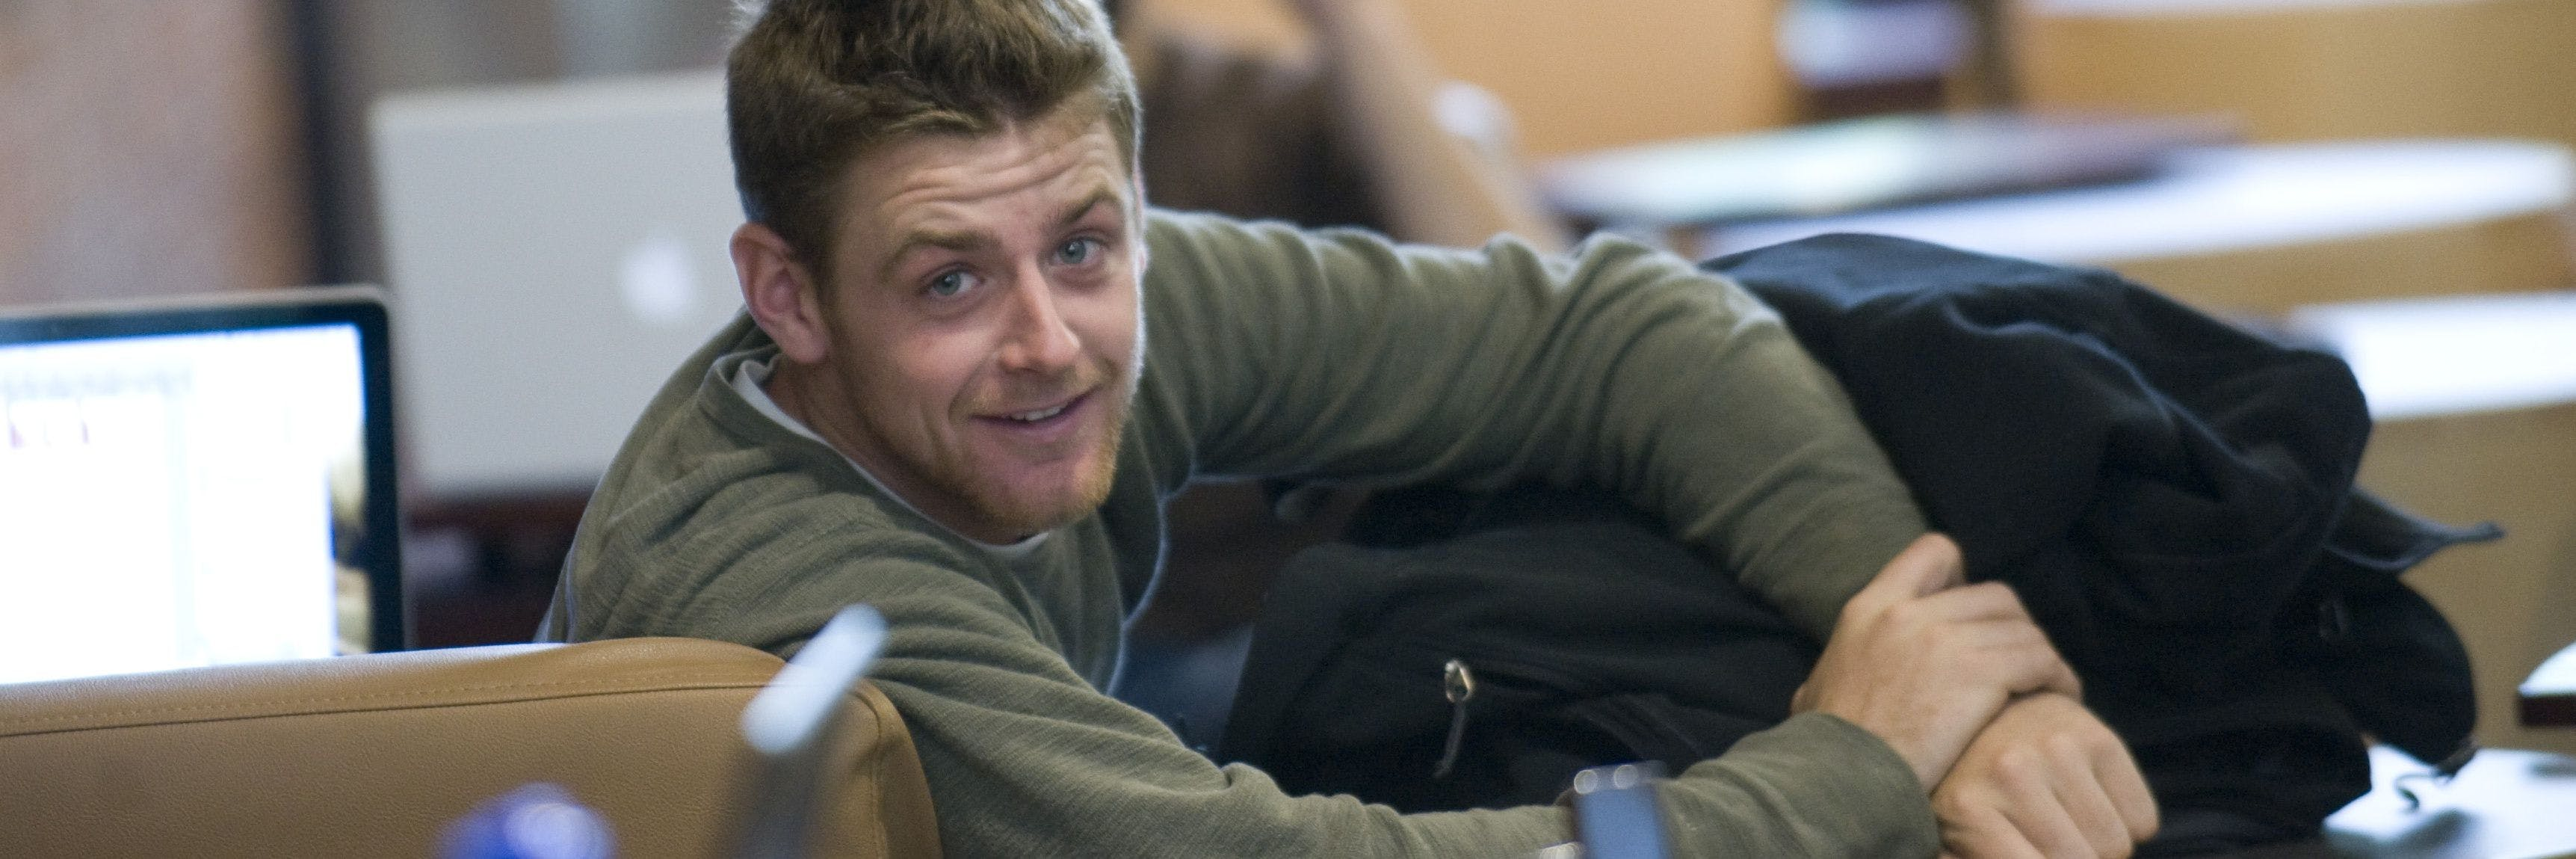 A student smiles in Brushaber Commons.